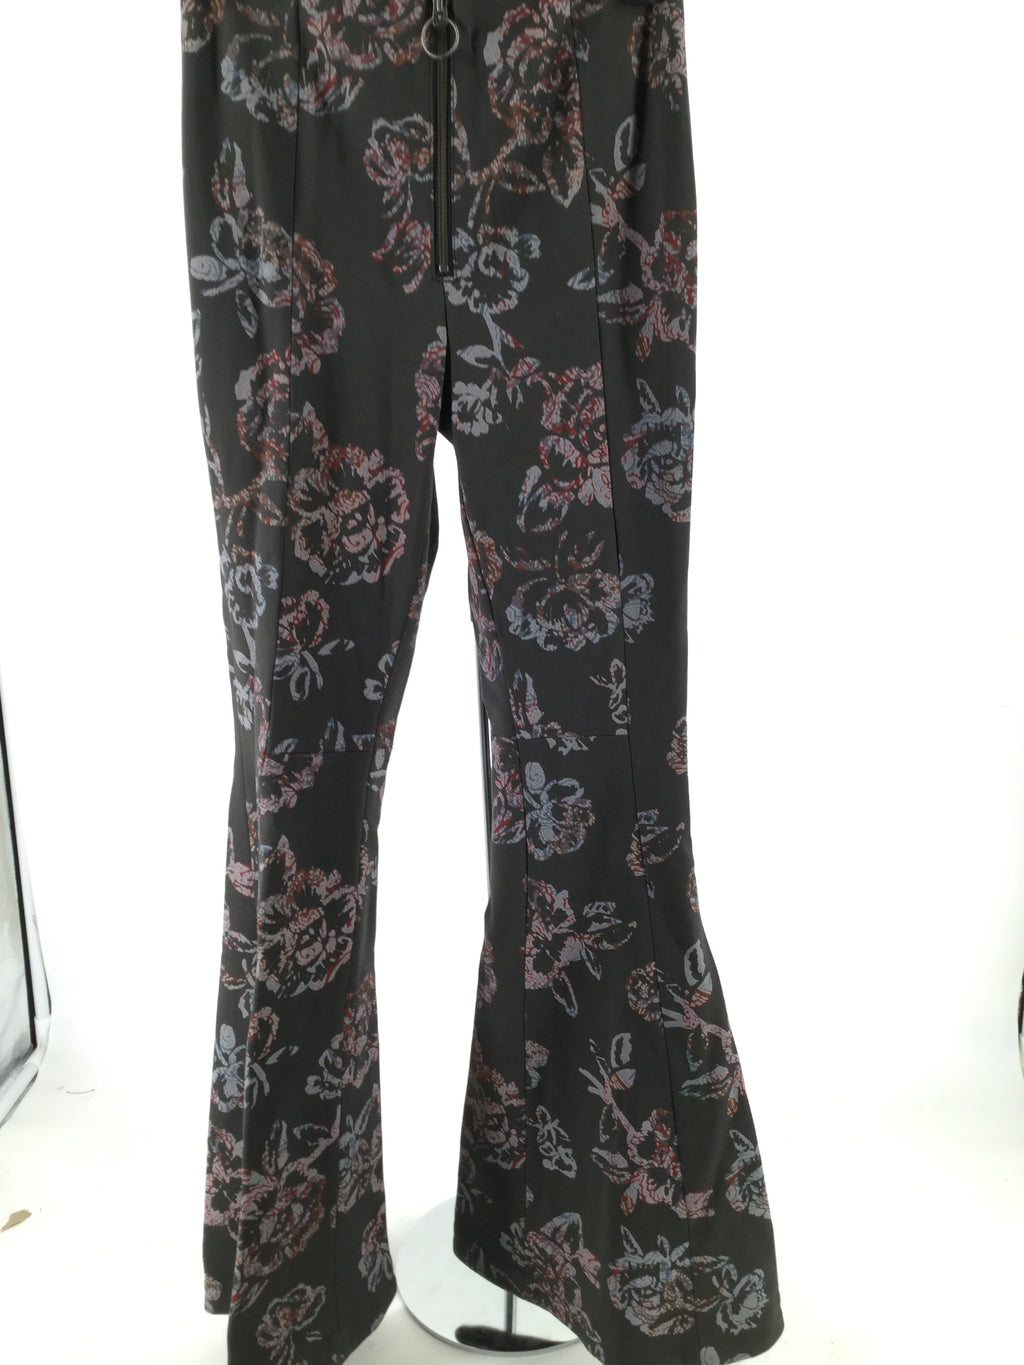 Free People Pants Size:4